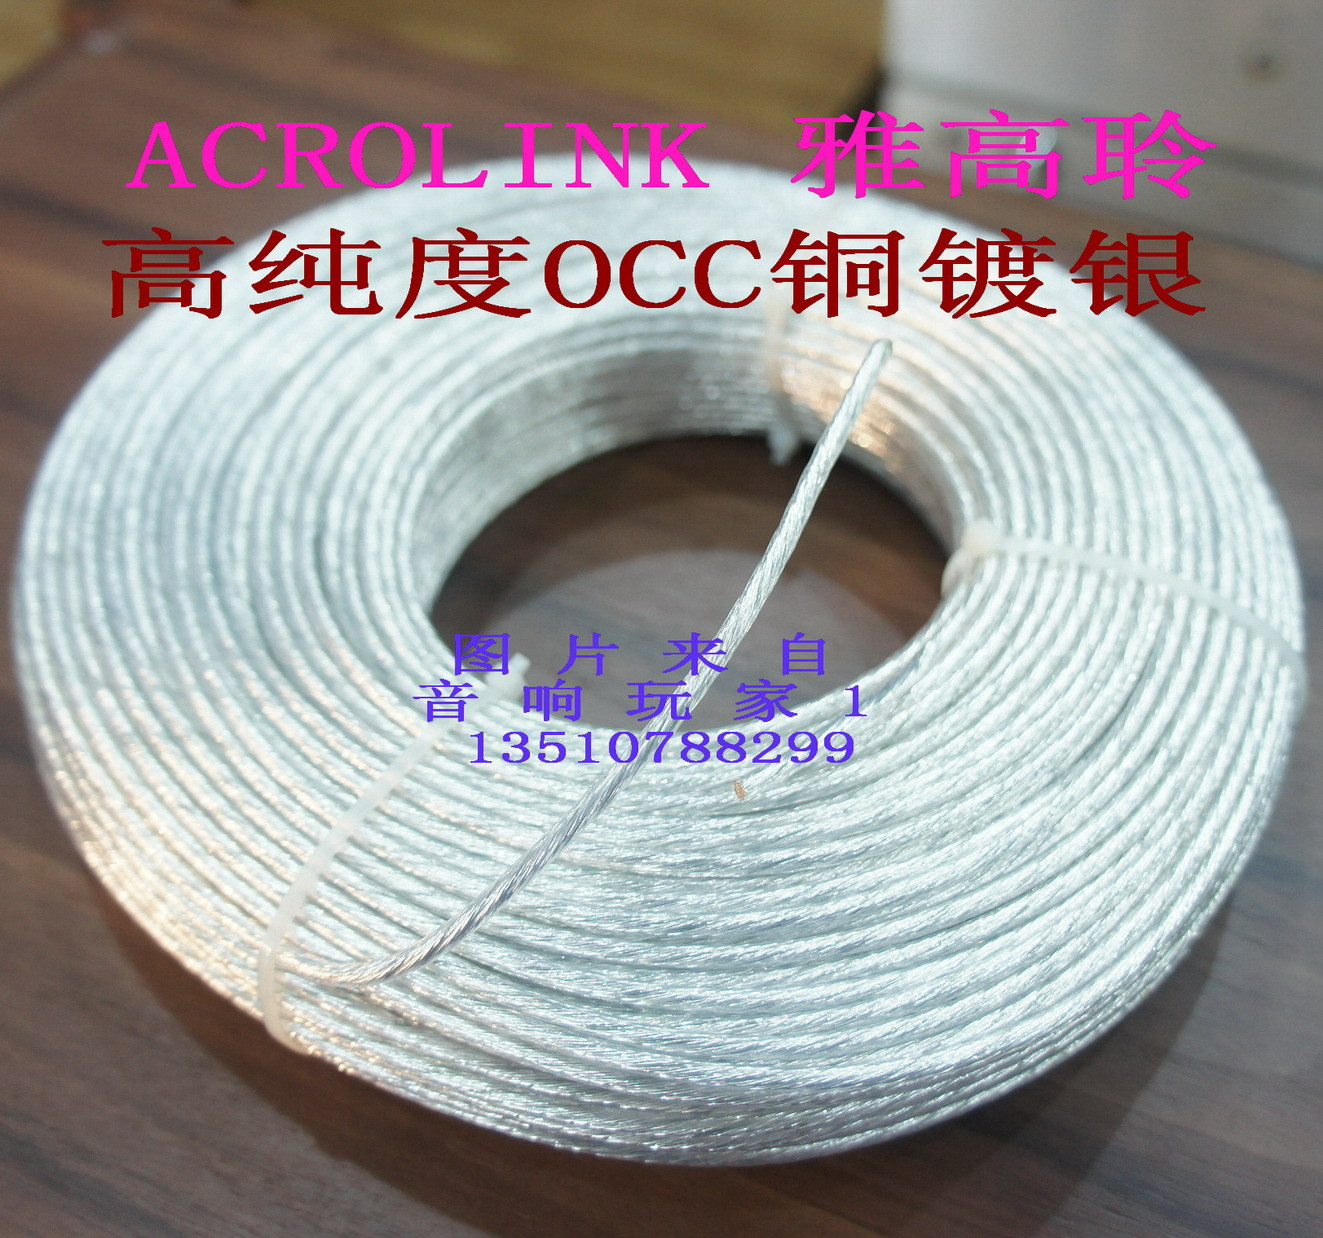 High purity OCC ACROLINK single strand silver plated copper wire ...